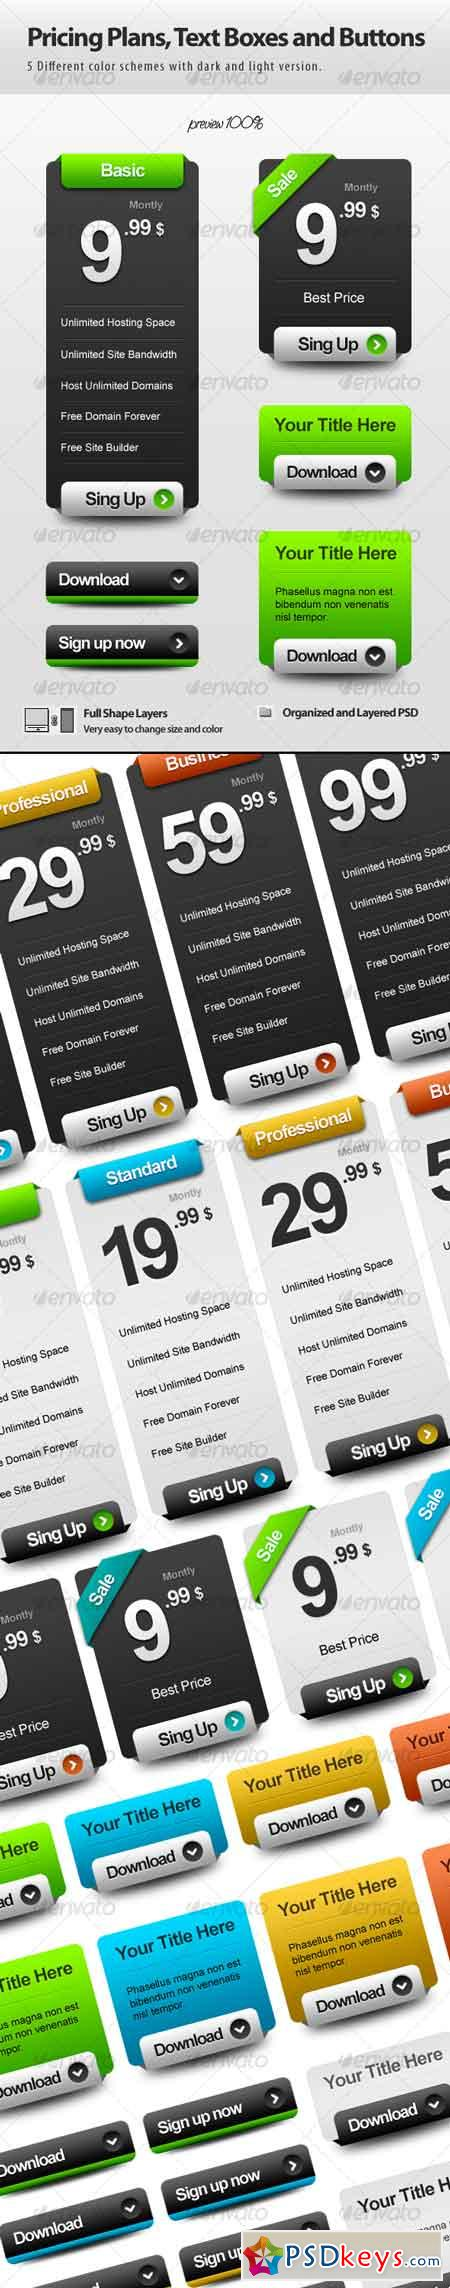 Pricing Plans, Text Boxes and Buttons 116952